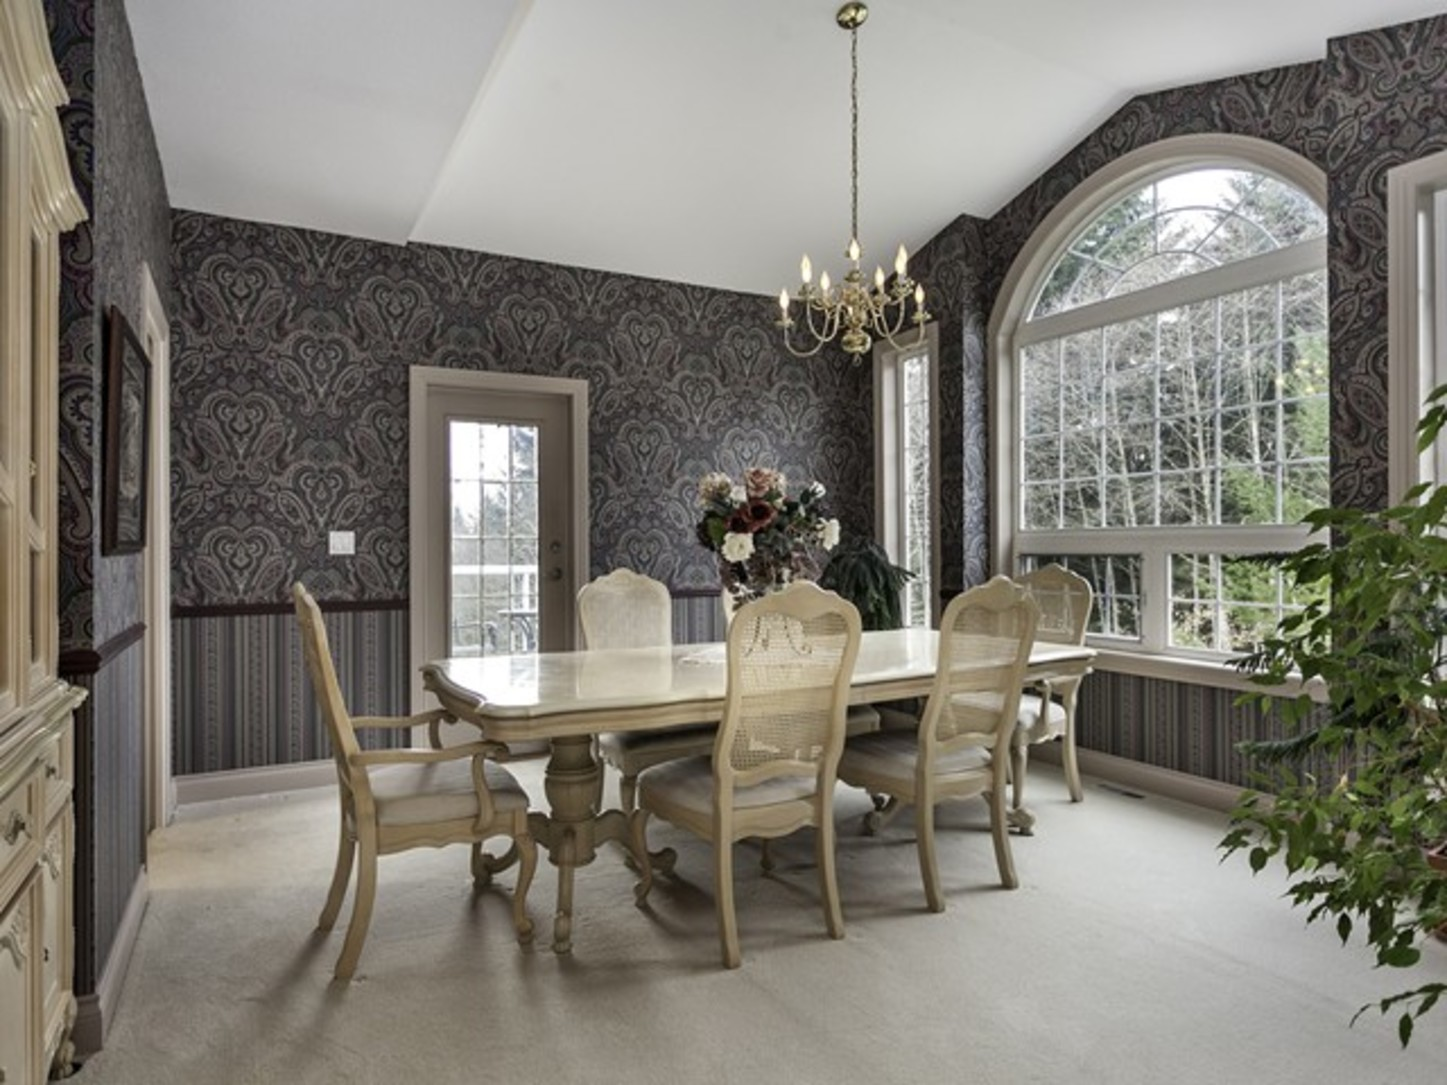 Formal dinning room at 2558 Diamond Crescent, Westwood Plateau, Coquitlam